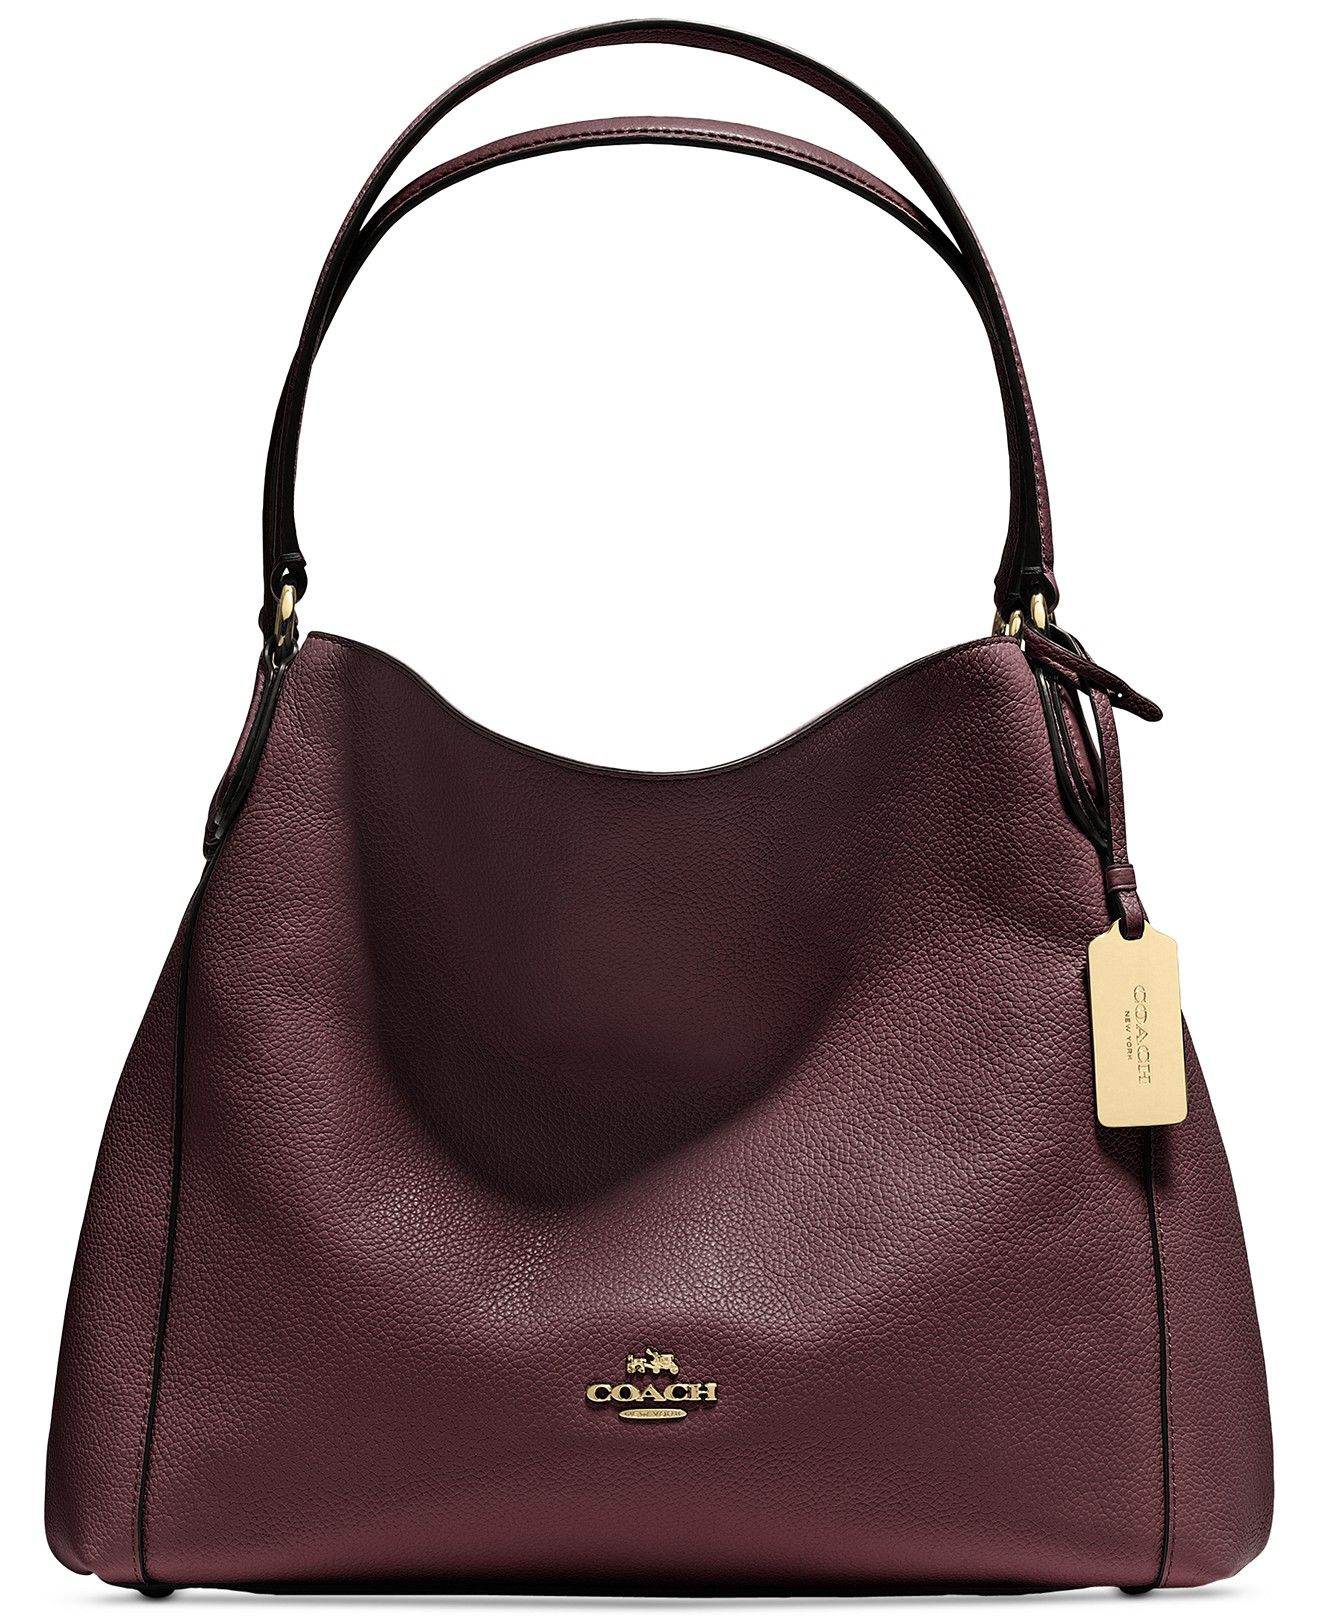 ddf89a7a3e4 COACH EDIE SHOULDER BAG 31 IN REFINED PEBBLE LEATHER - COACH ...